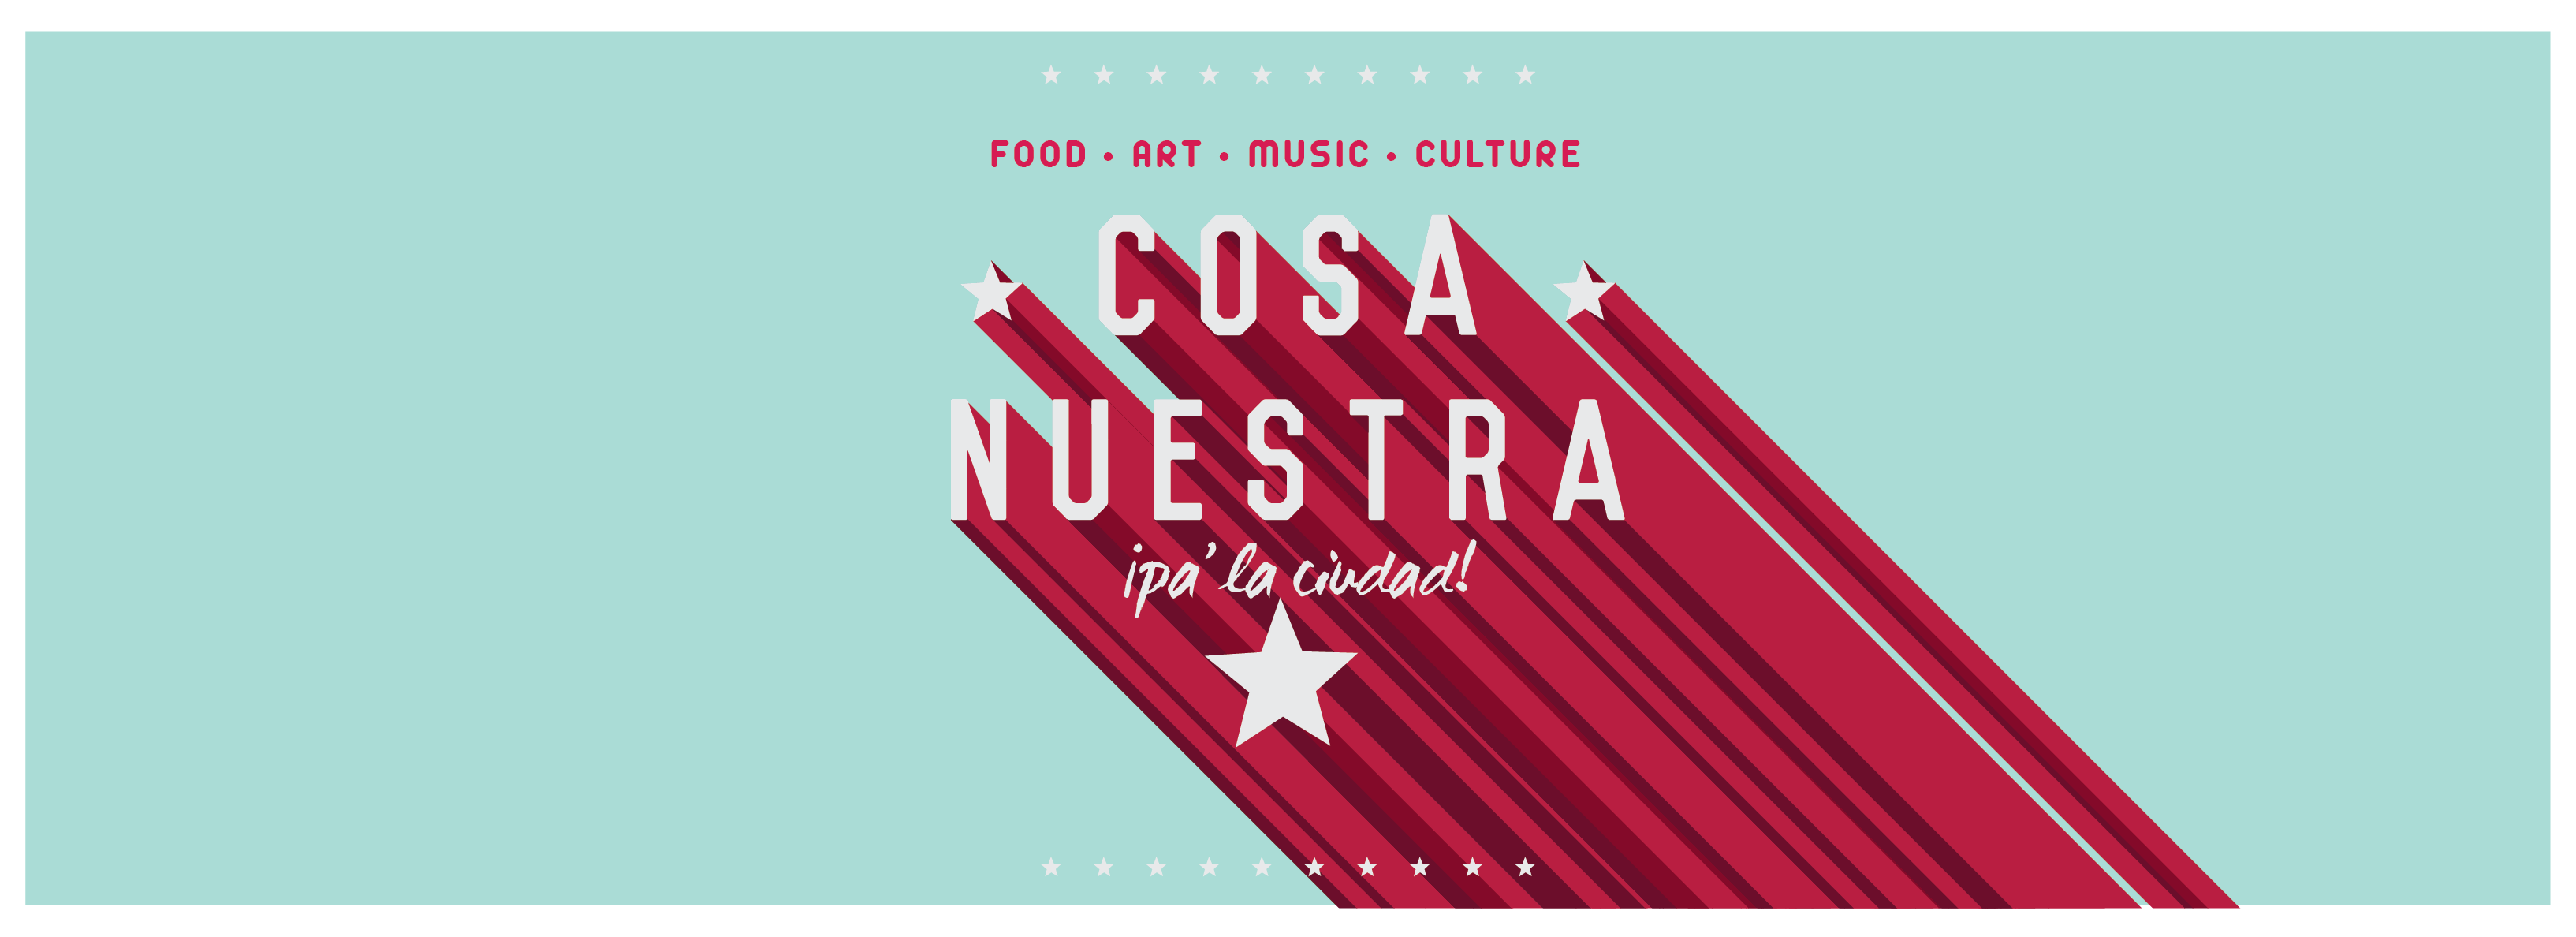 Inspired by the Fania All-Stars, the Cosa Nuestra Collective Wants to Be the Face of a New Latino Creative Vanguard